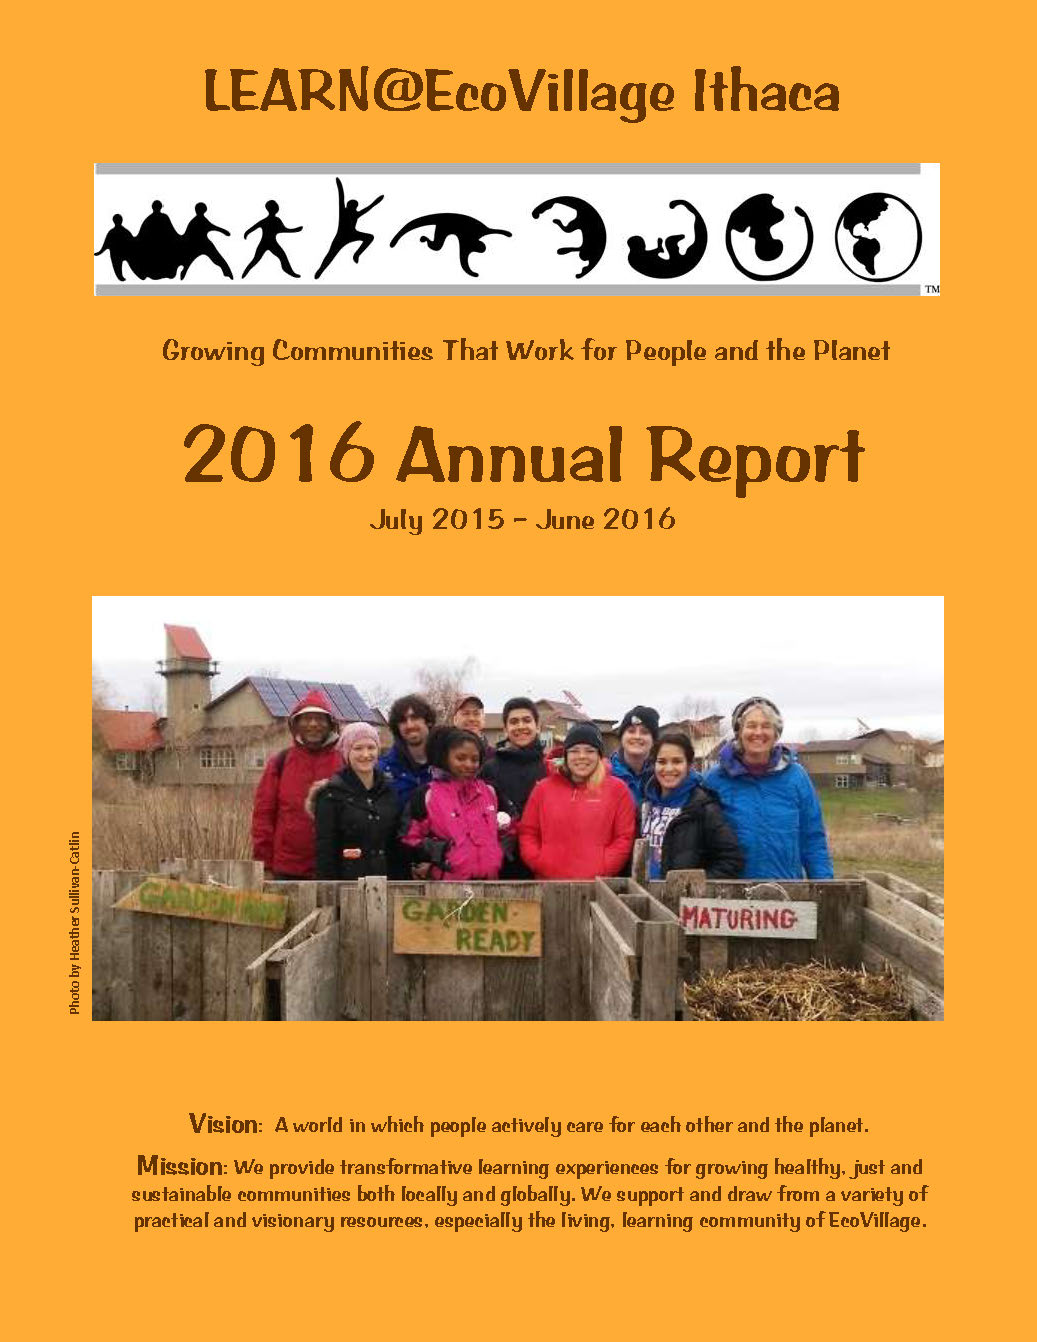 2016 Annual Report - EcoVillage Ithaca